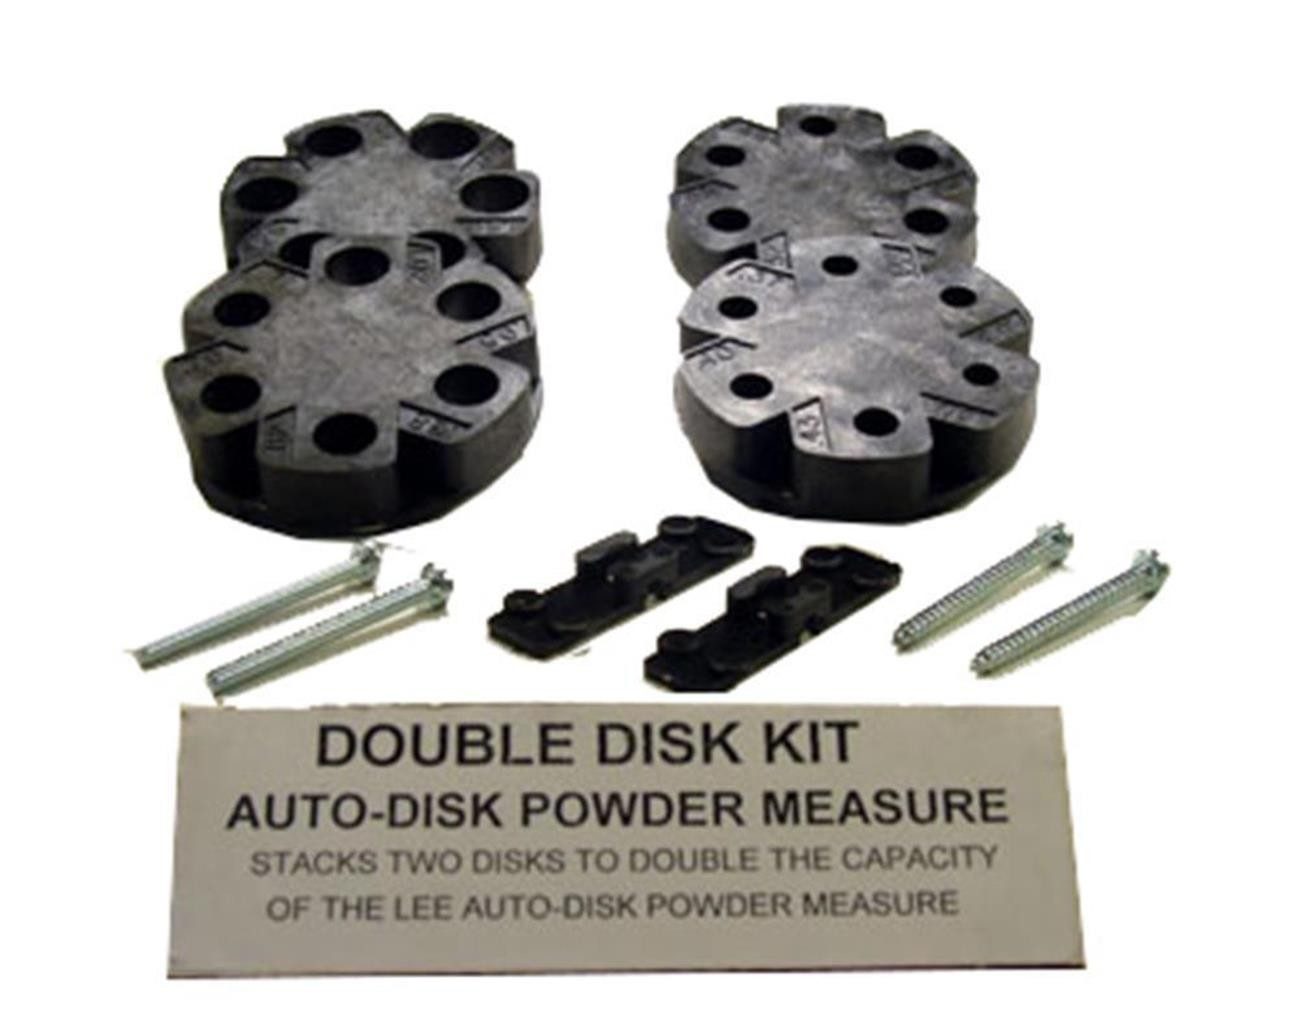 Double Disk Kit For Auto Disk Powder Measure